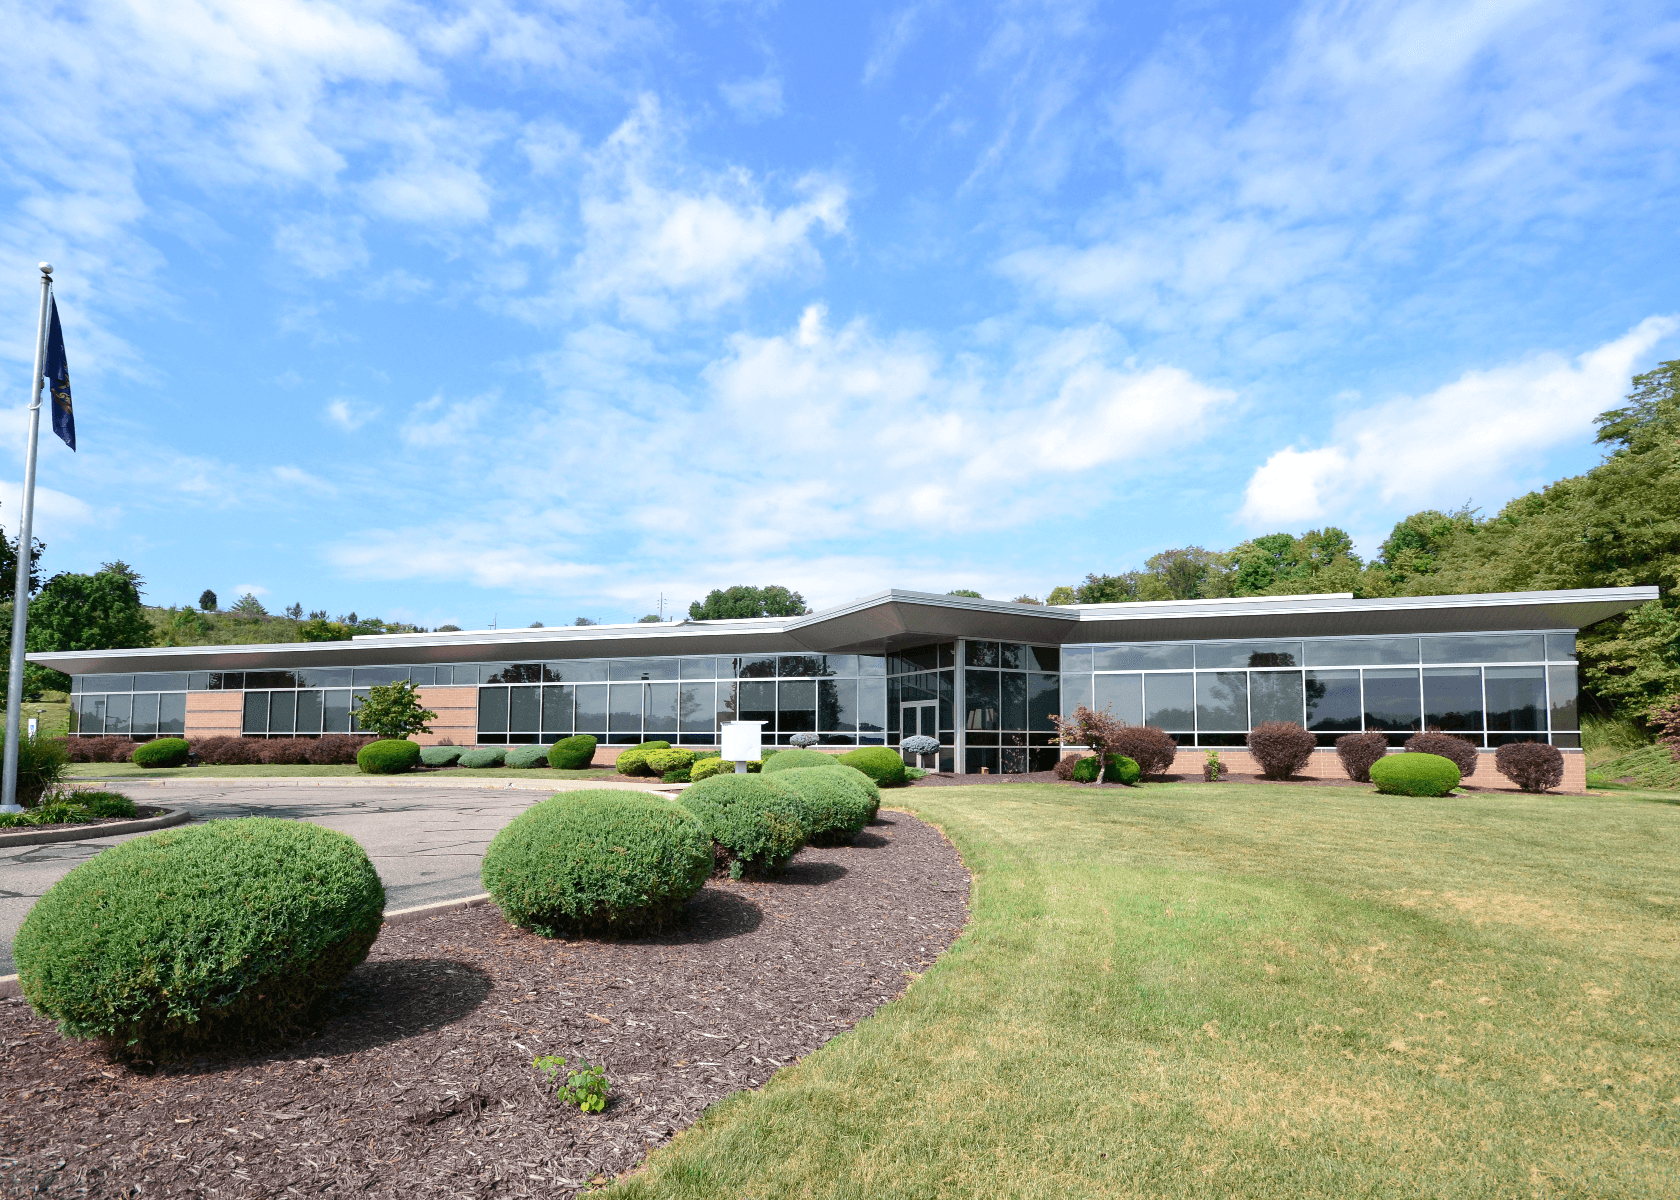 Exterior of 130 Technology Drive: A one-story office building with floor-to-ceiling windows